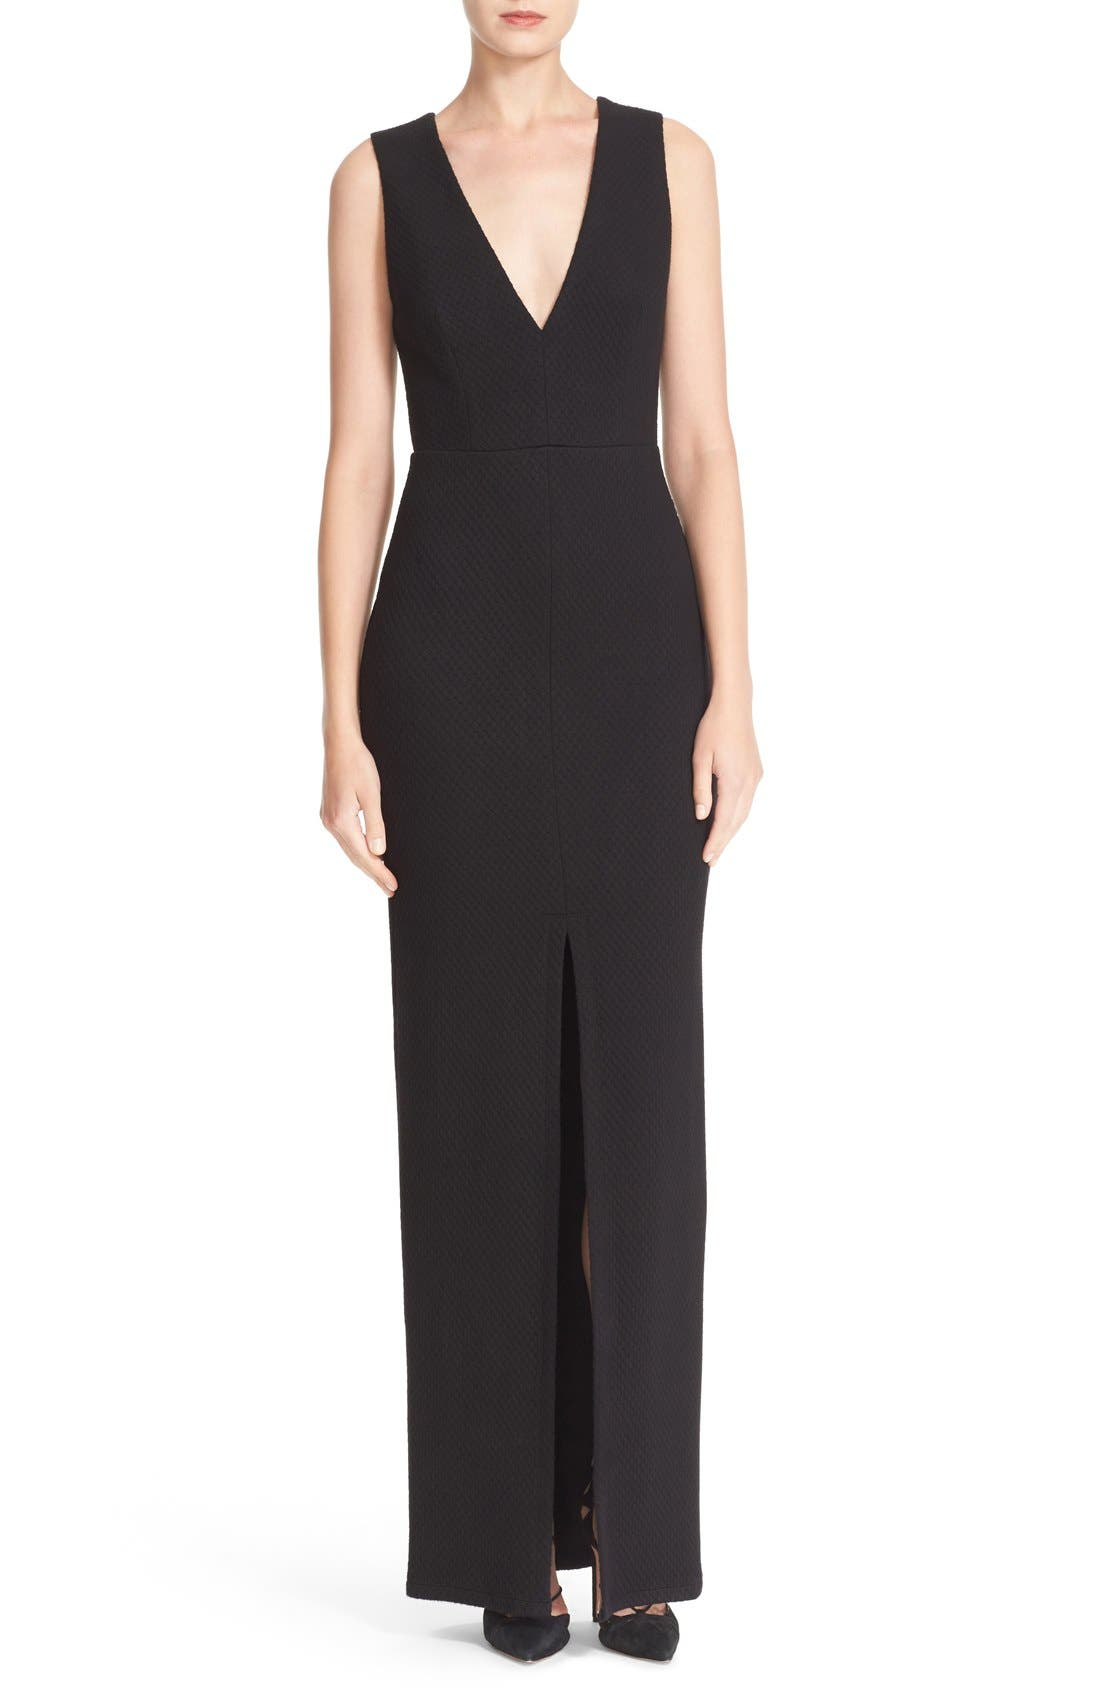 ALICE + OLIVIA Slit Front V-Neck Maxi Dress